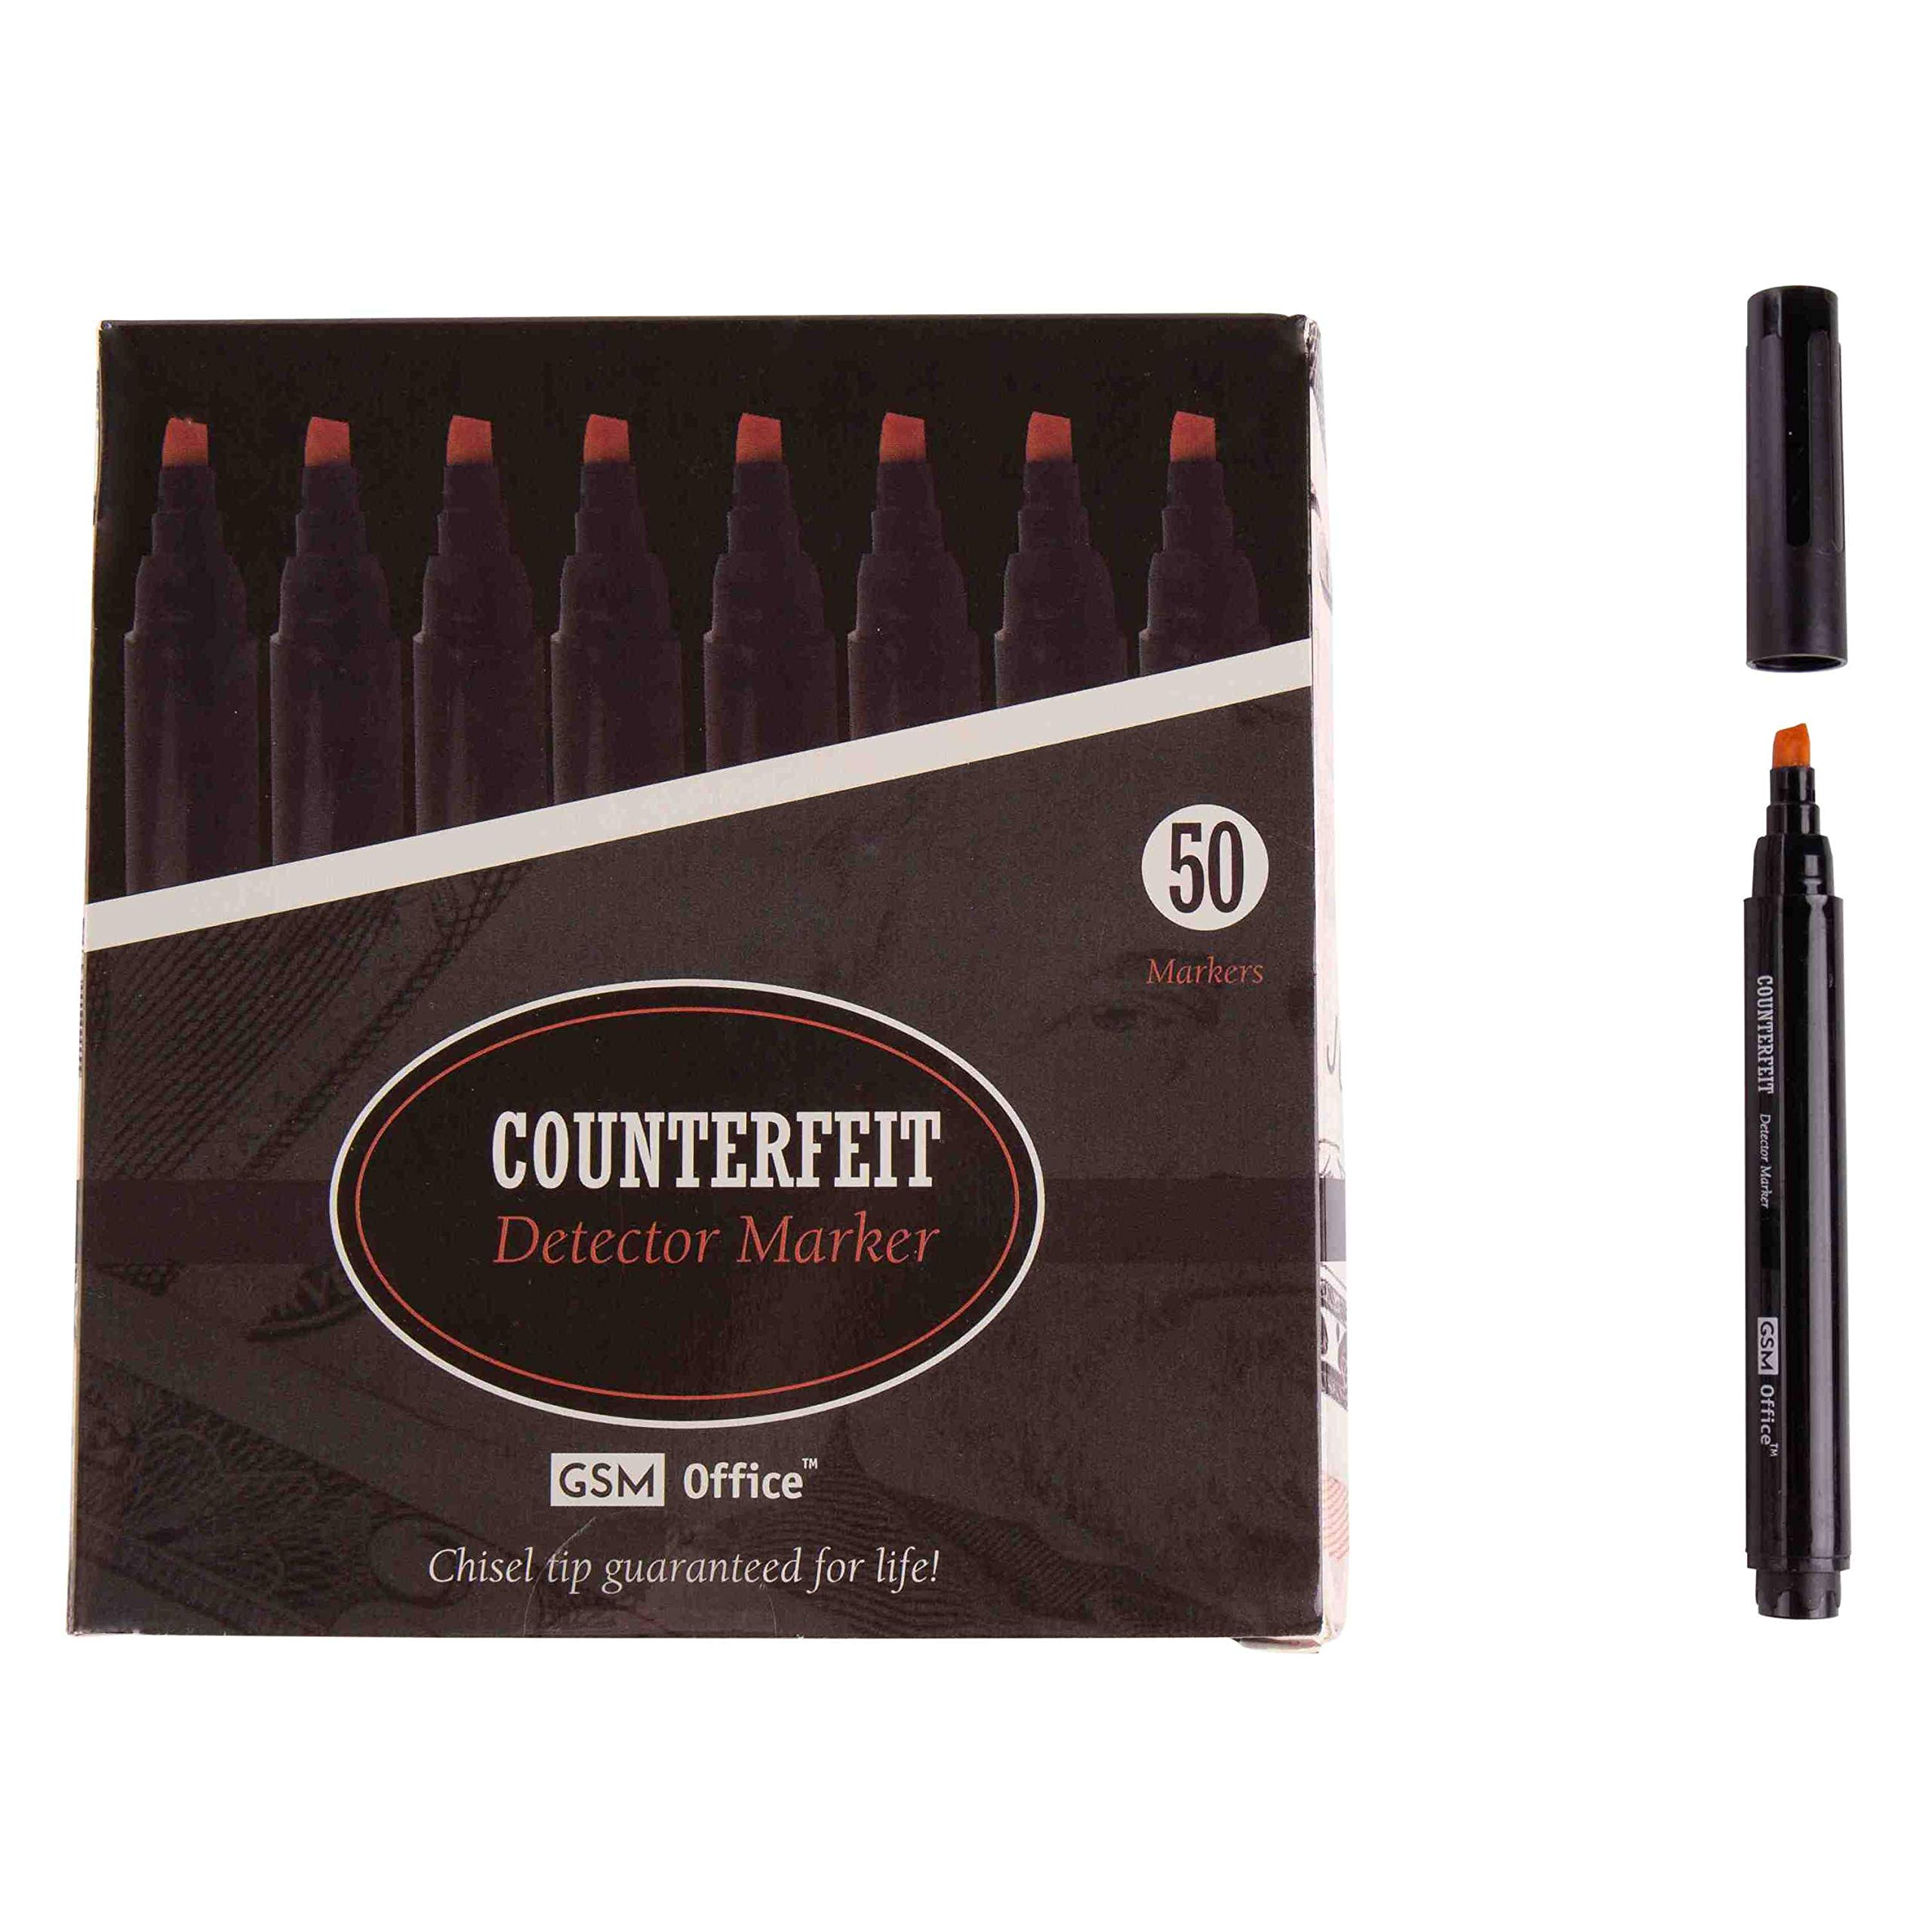 Counterfeit Money Bill Detector Pens, Markers - Detects Fake Currency - 50 Pack by GSM Brands